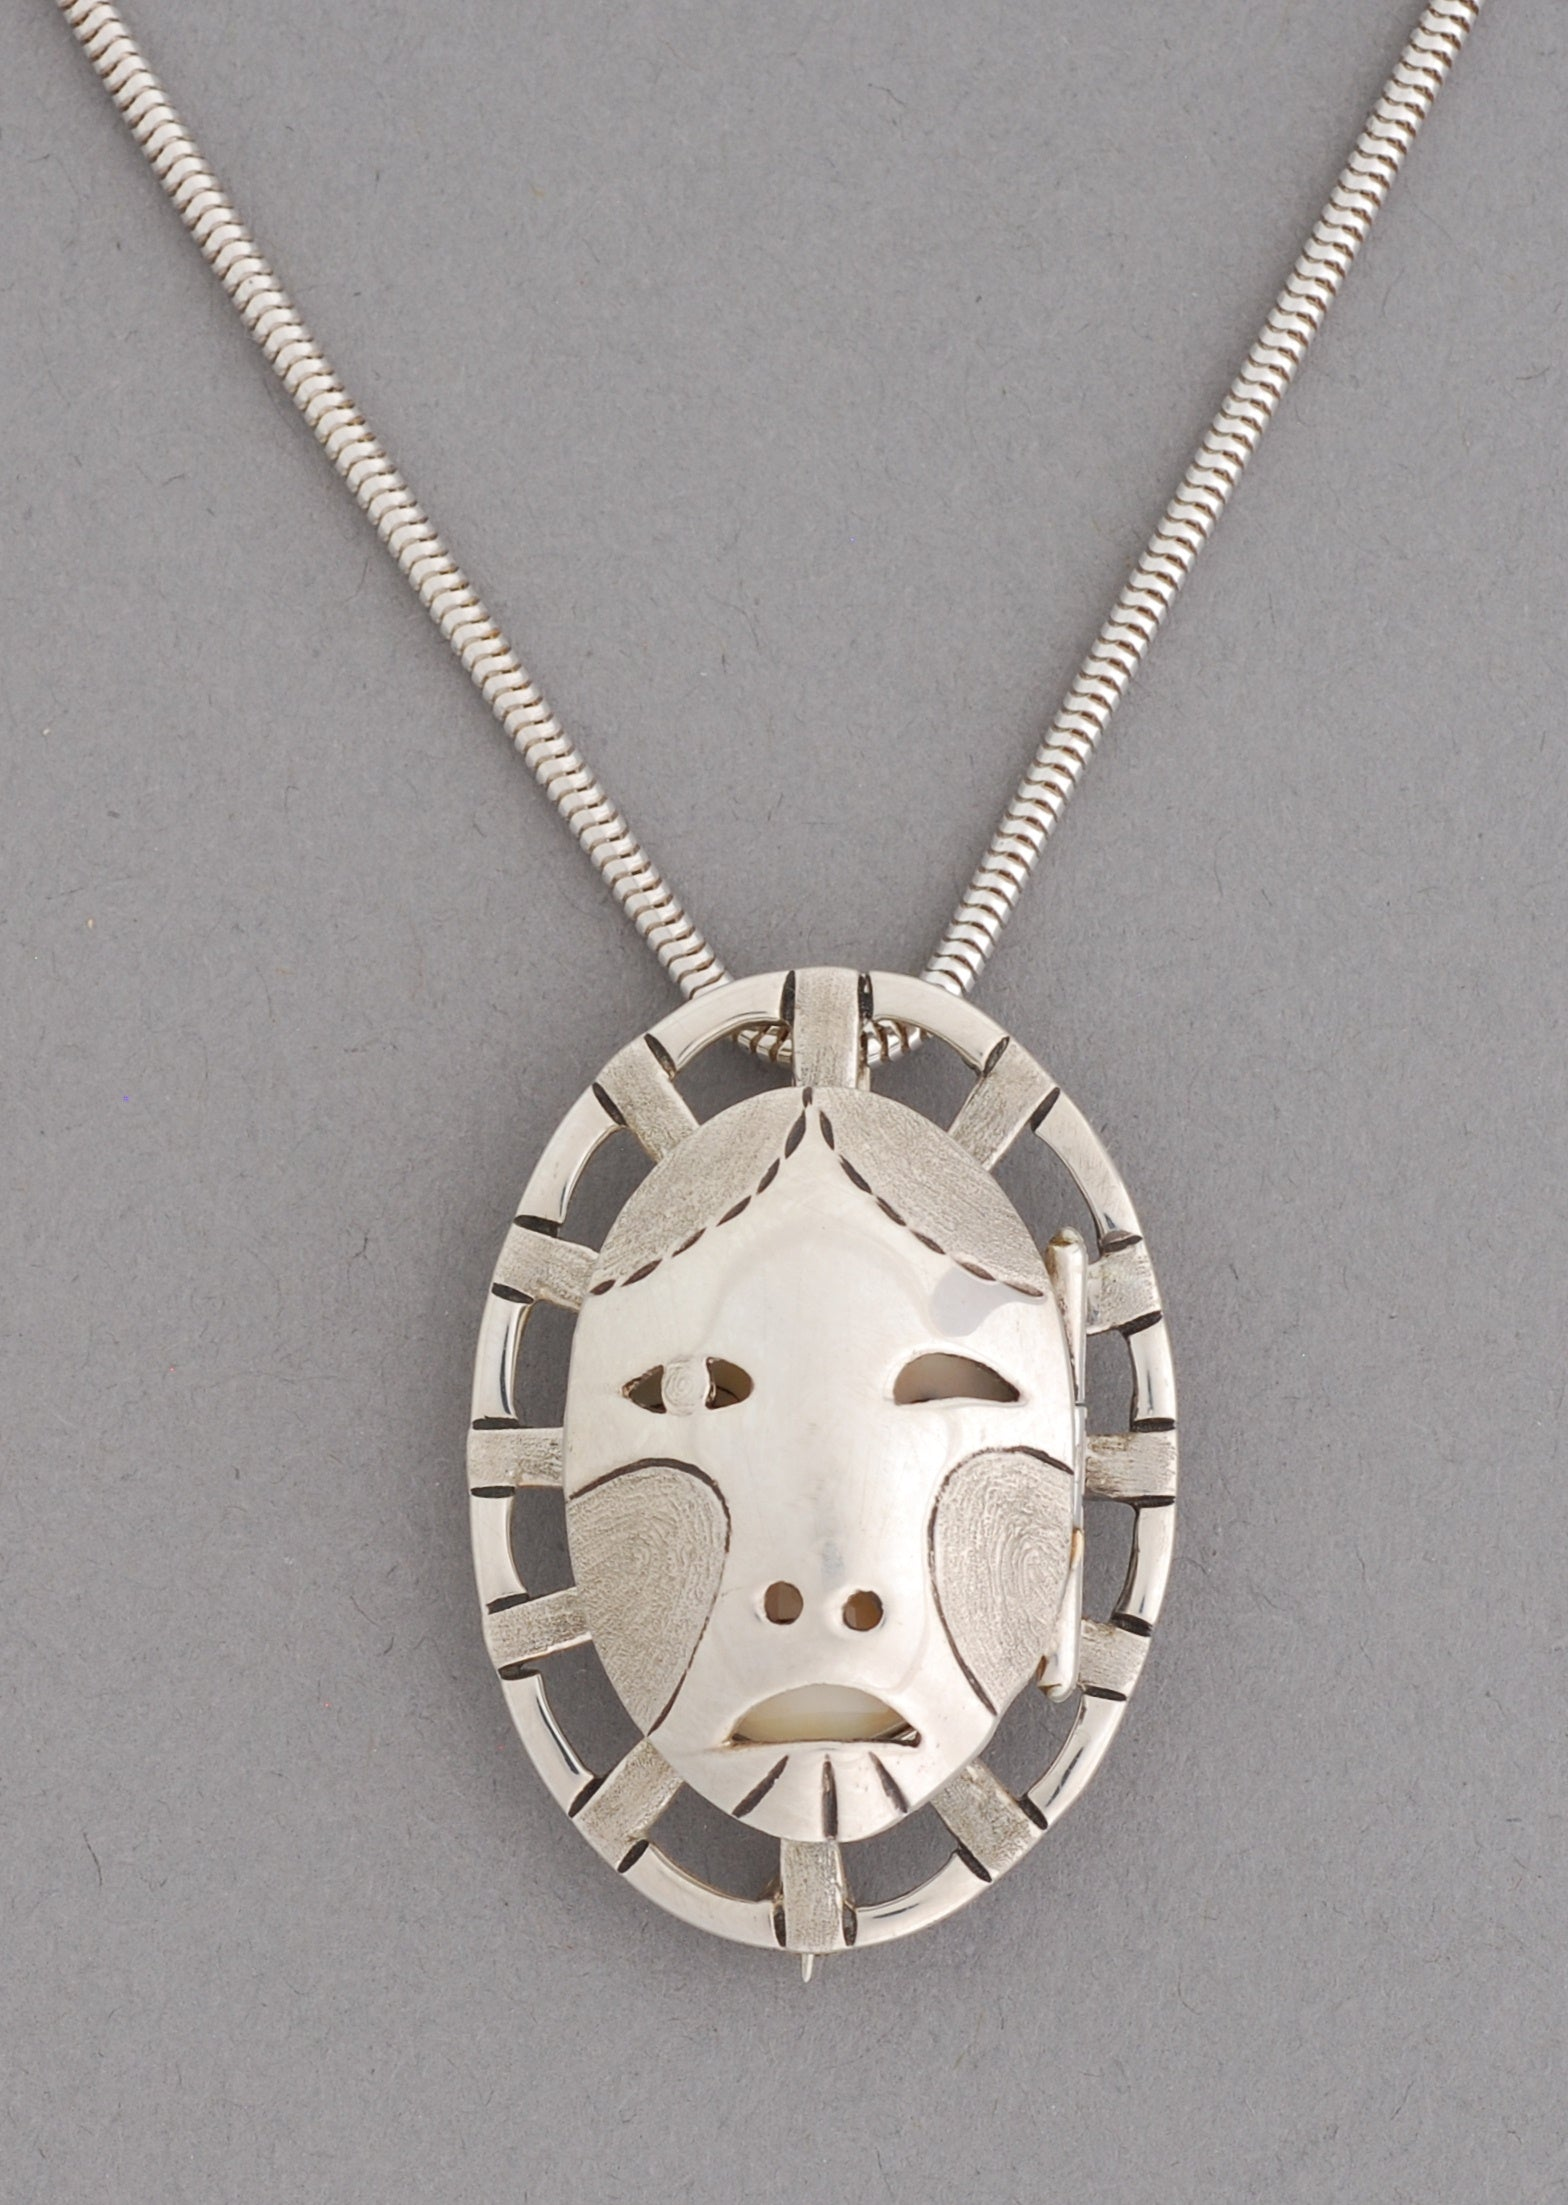 Woman In The Moon Pin/Pendant w/door by Denise Wallace